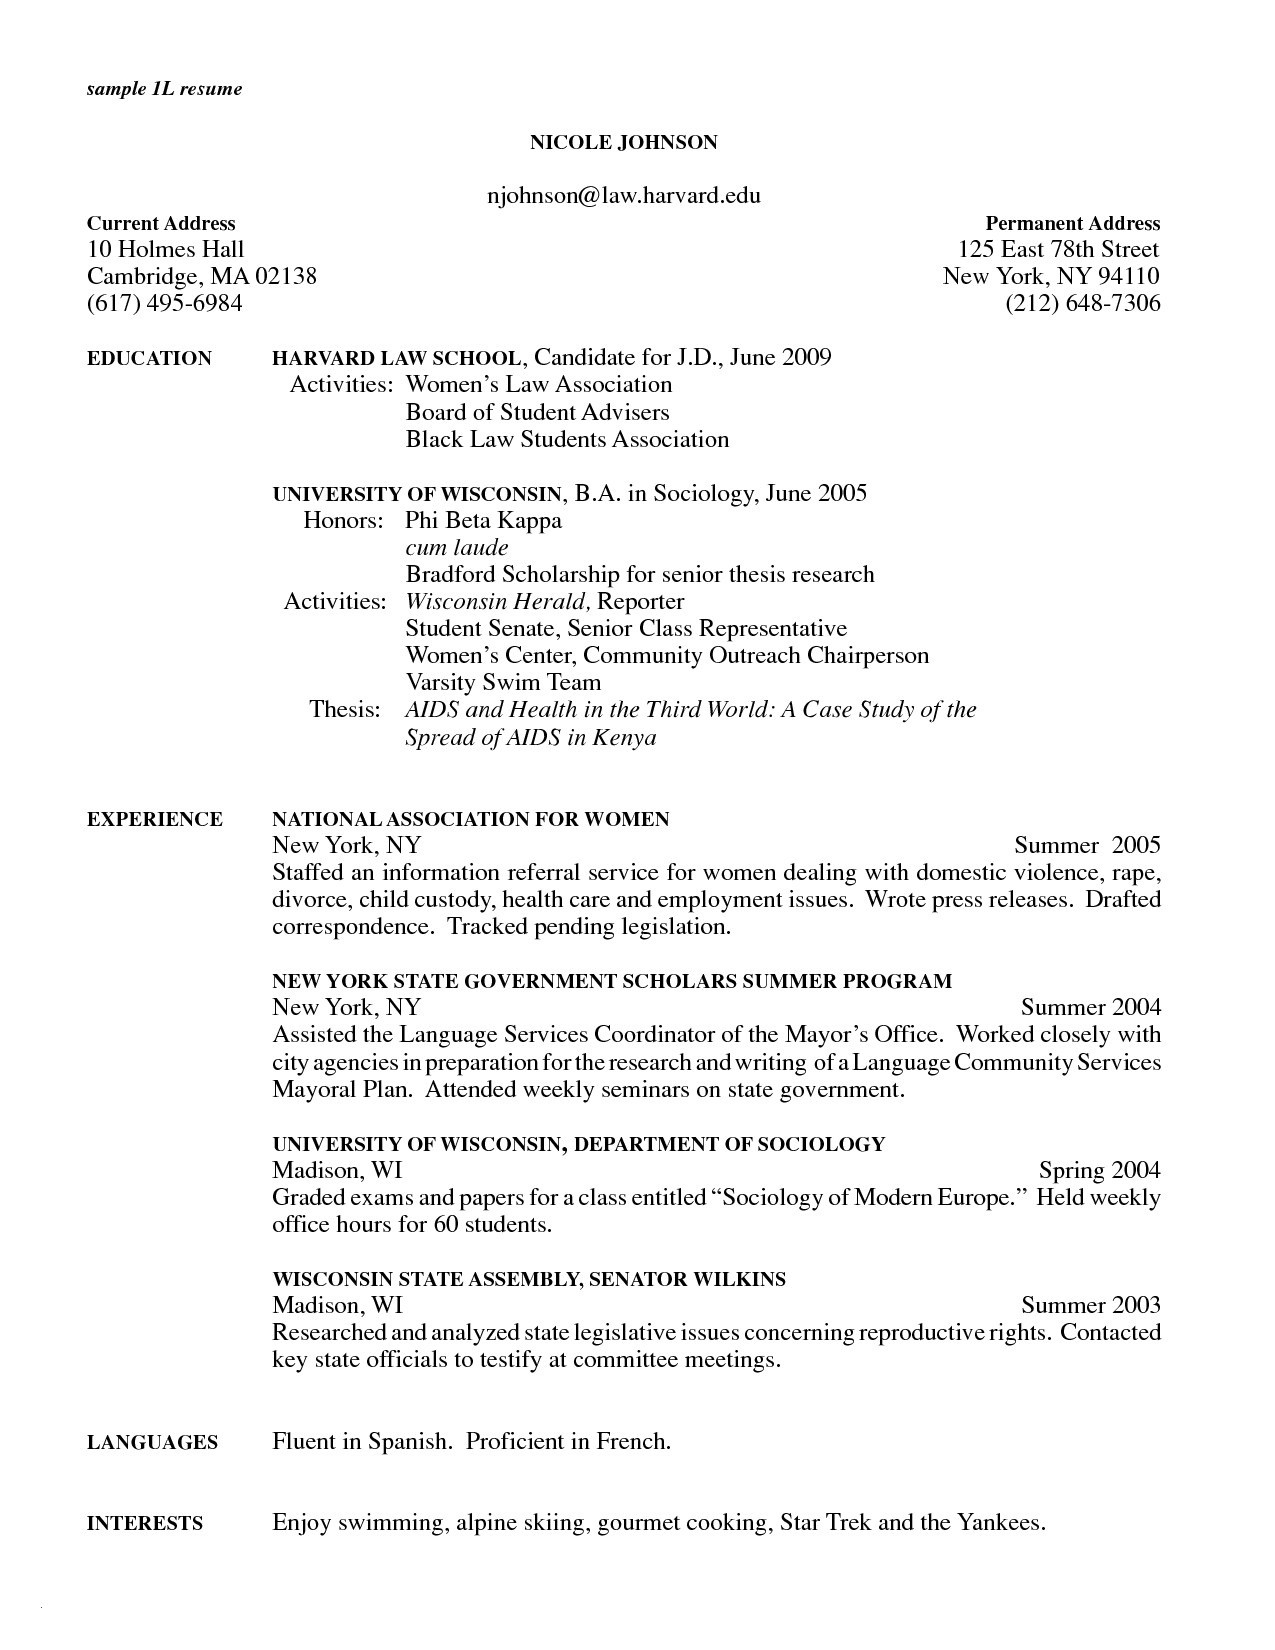 Law Firm Resume - 2017 Legal Resume format Edmyedguide24